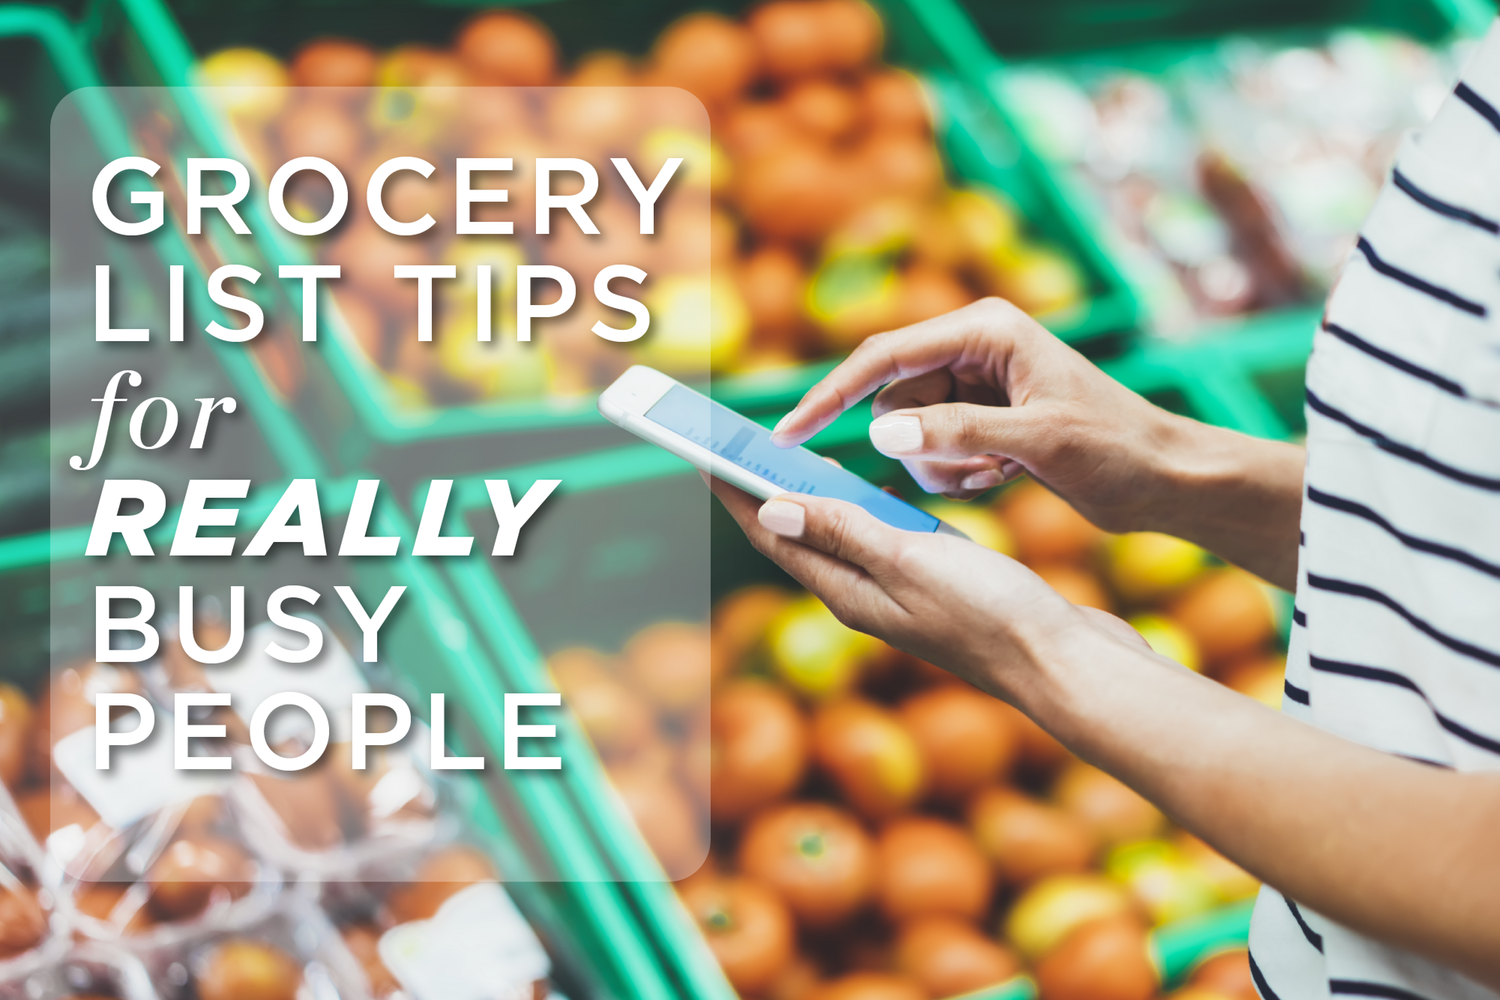 5 Tips For Making An Organized Grocery List From Really